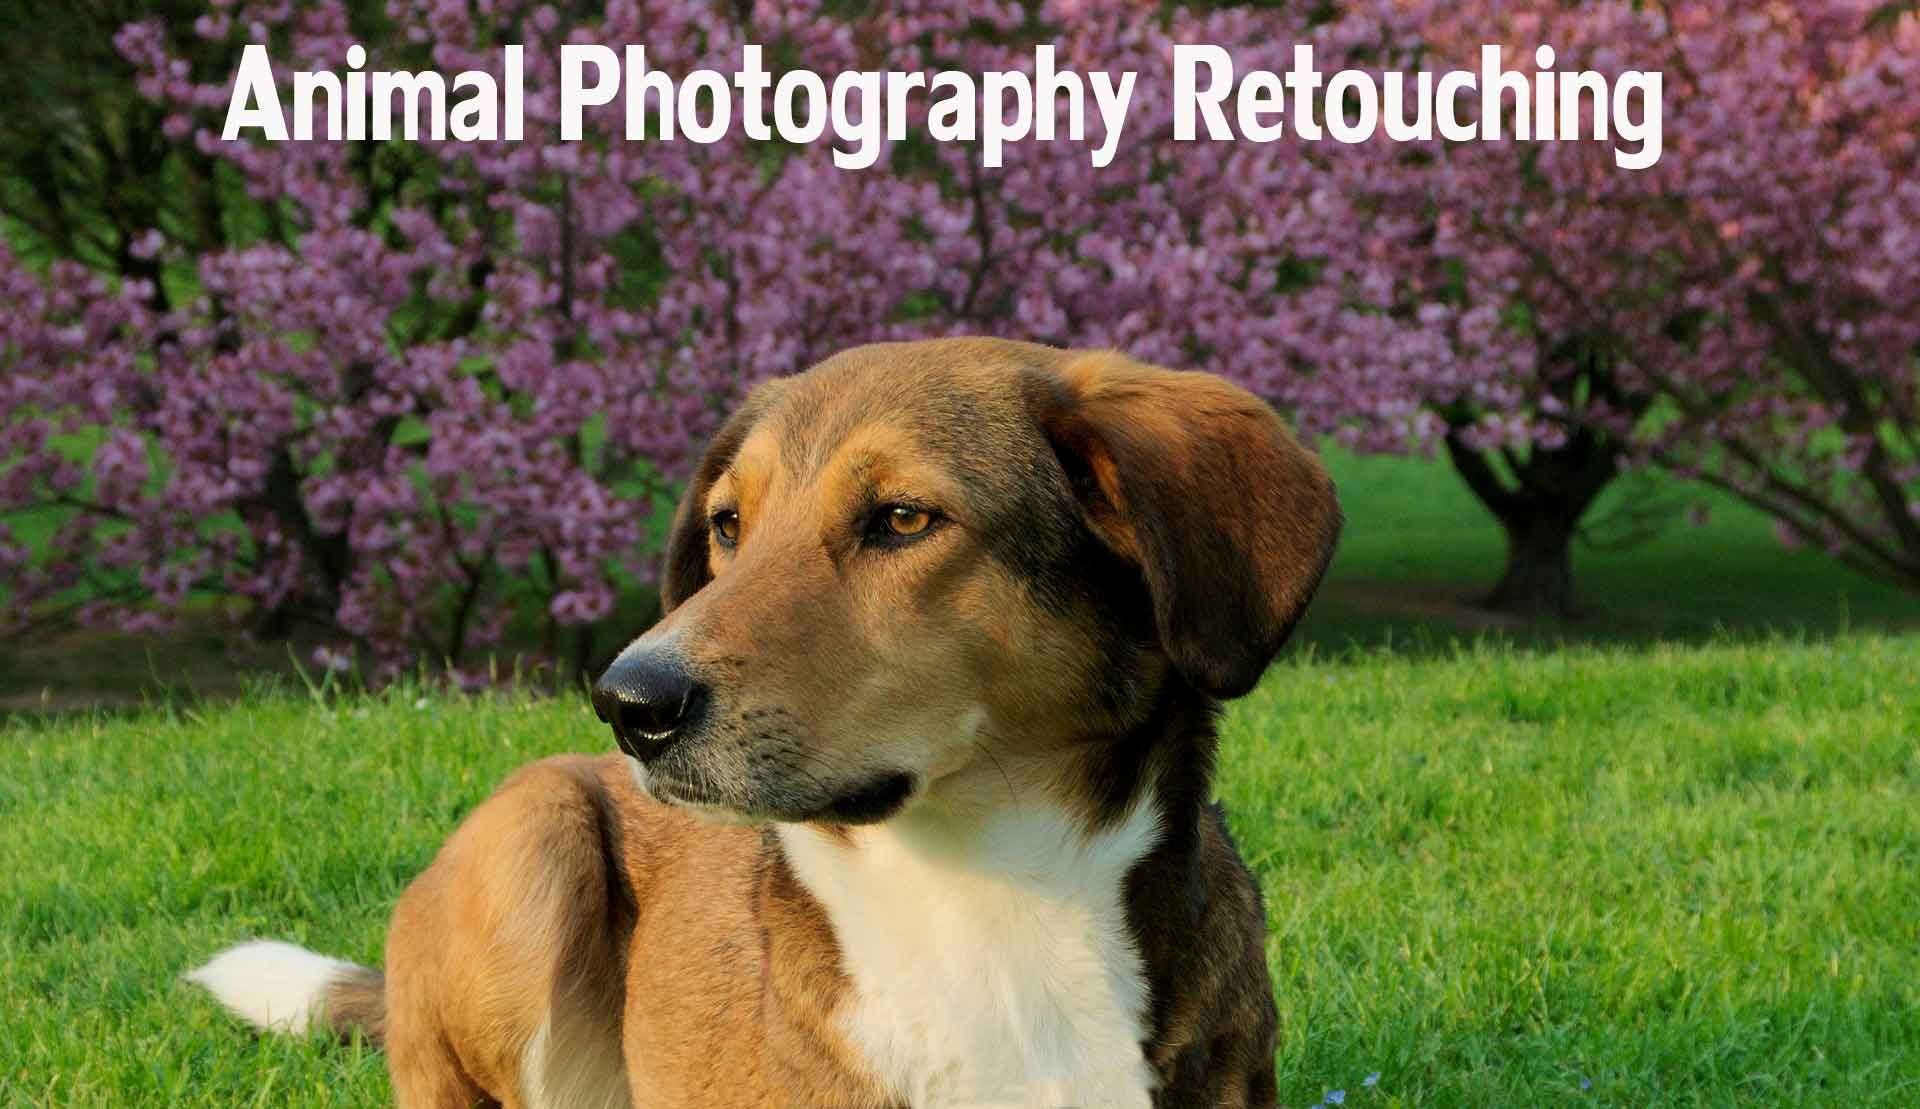 Pet Photo Editing Services Animal Photography Retouching Services Pet Animal Photo Retouching Image Editing Services To Uk Usa Norway Canada New Zeala Dogs With Jobs Animal Photo Animal Photography